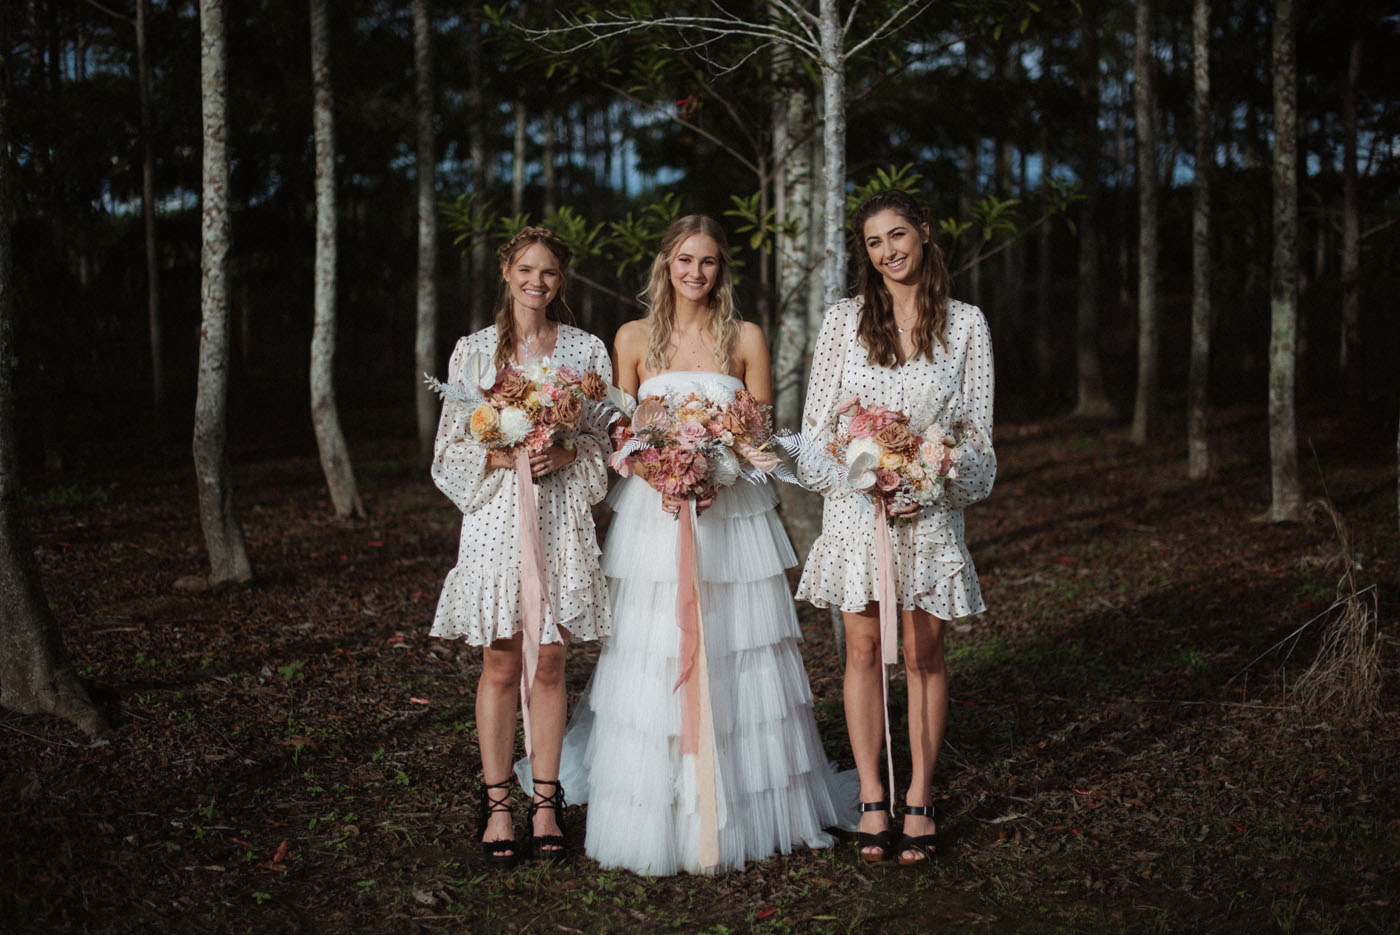 Polka dot bridesmaid dresses